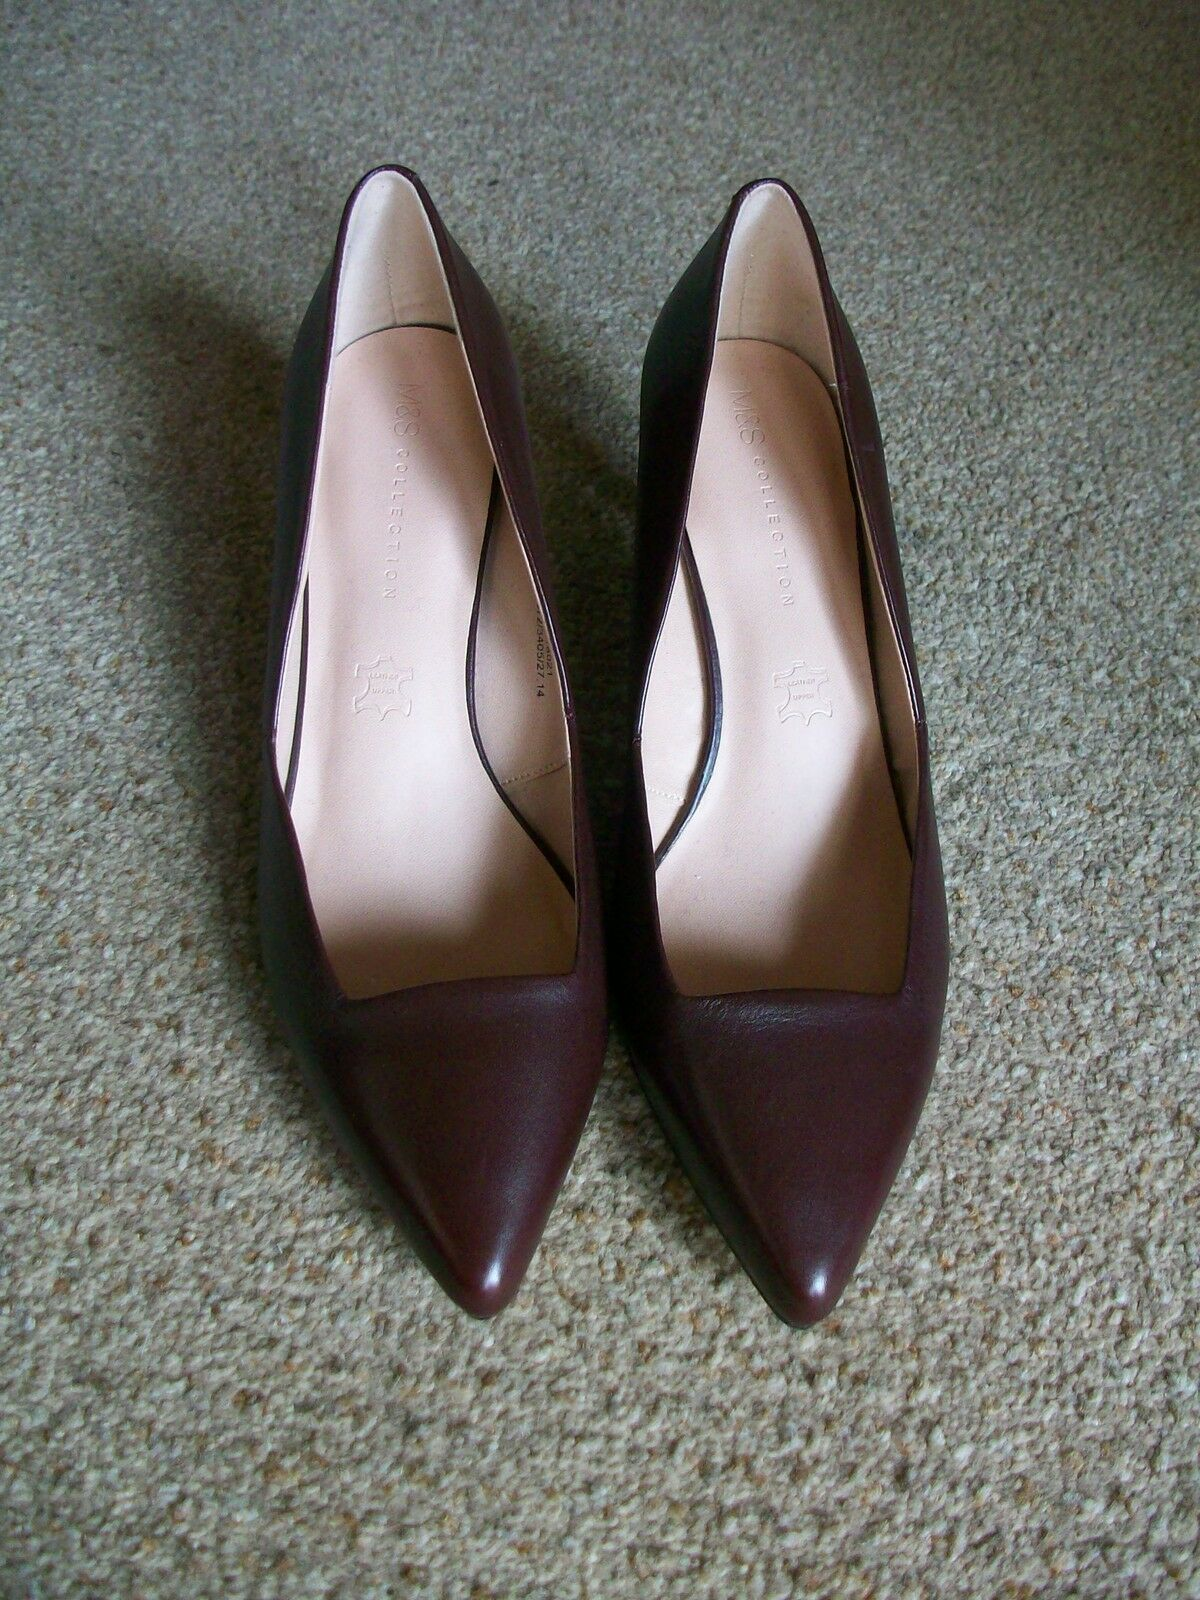 Ruby Leather Court schuhe schuhe schuhe with Insolia, Größe 8, Marks & Spencer, BNWT be0644